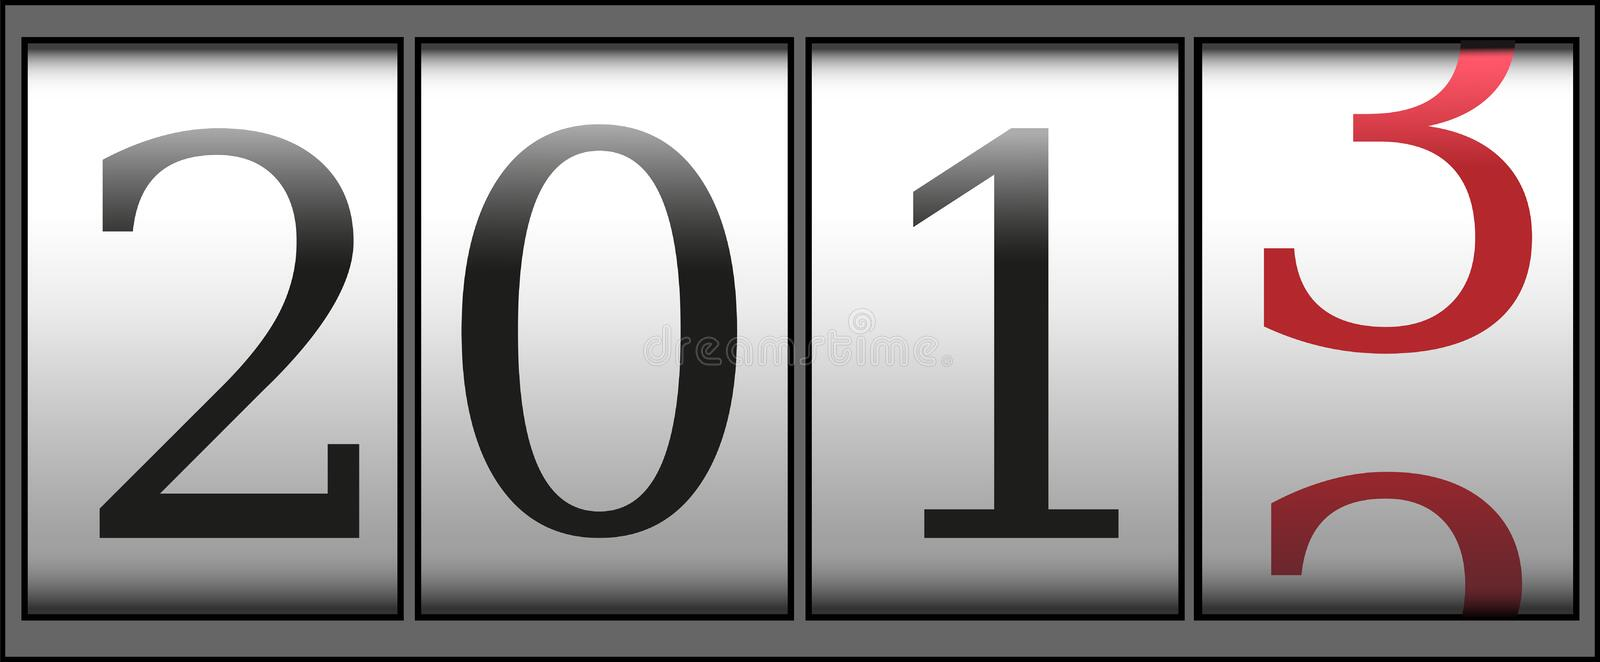 New year counter royalty free stock photo